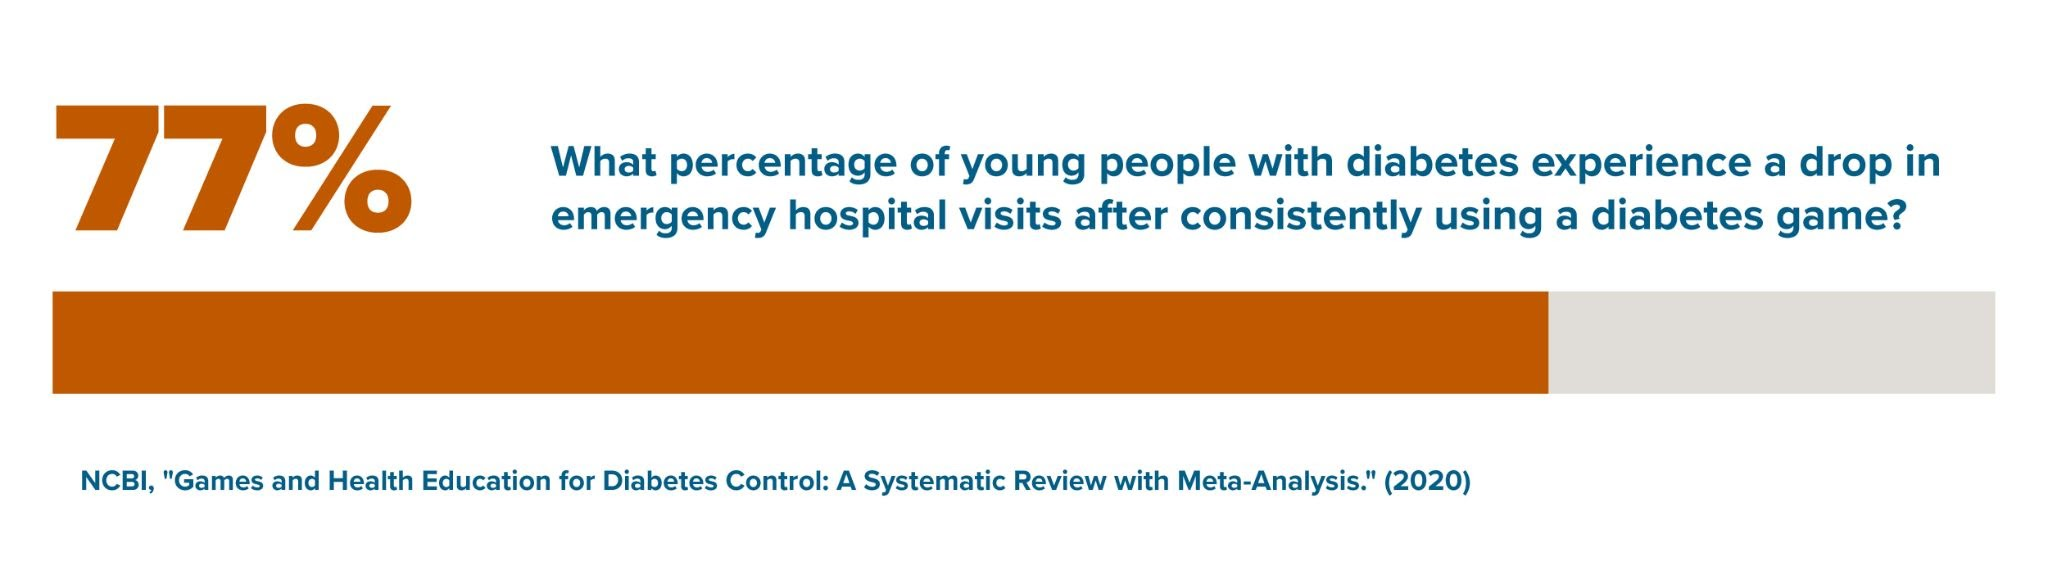 Statistic of percentage of young people with disabilities that have experienced a drop in emergency hospital visits after consistently using a diabetes game